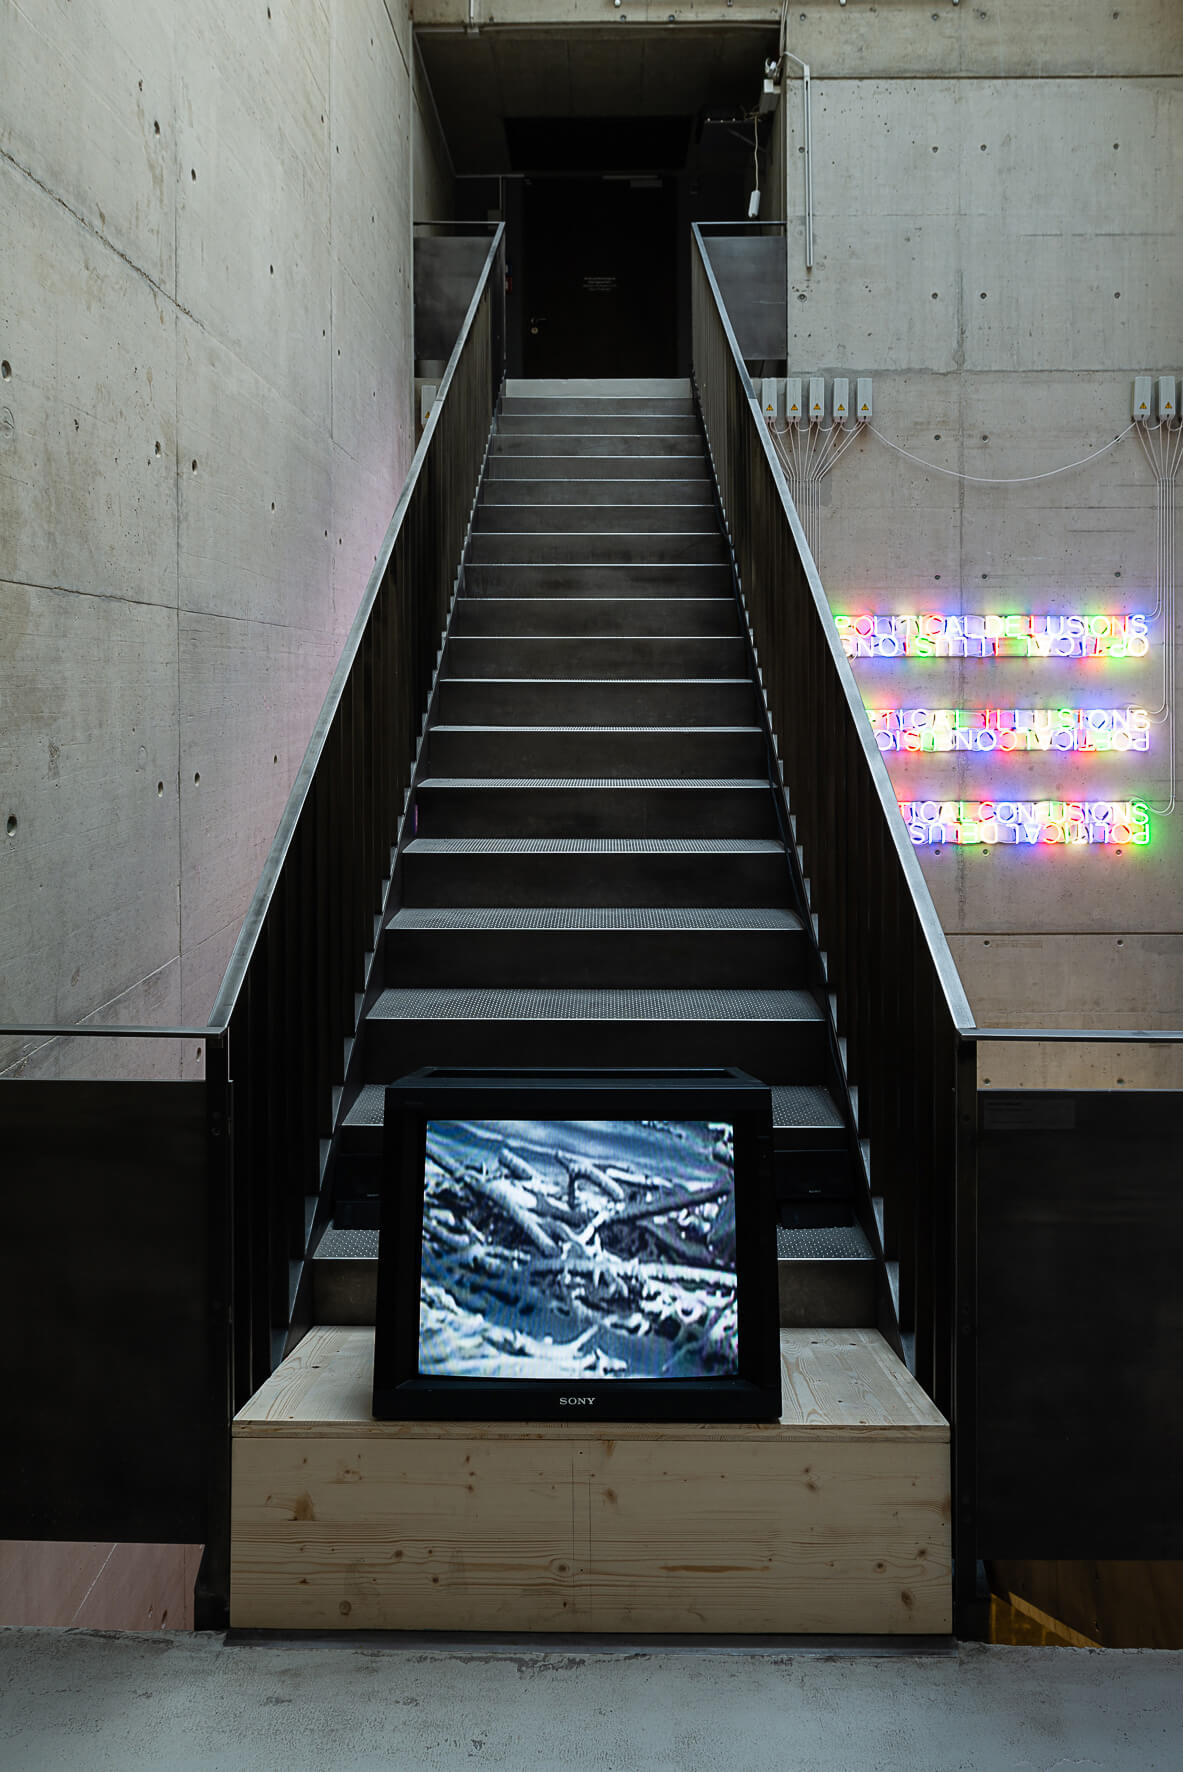 Mladen Stilinović's 2001 film Potatoes, Potatoes, was installed alongside one of Tim Etchells' Mirror Pieces at the top-most floor of the Kunsthalle Wien | Jorit Aust | STIRworld